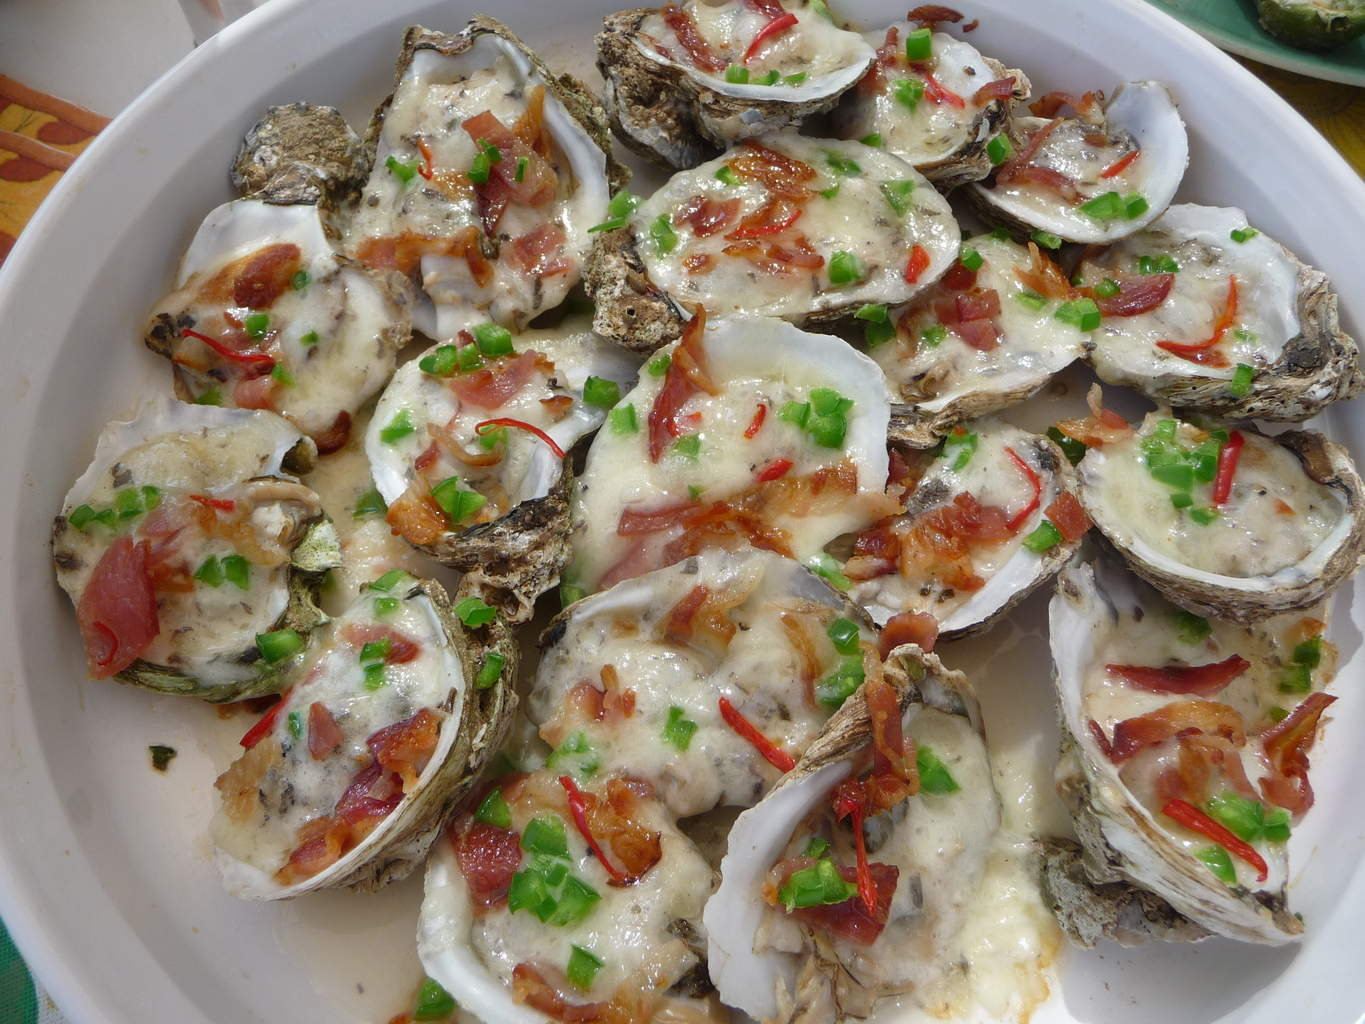 Oysters with Bacon, Jalapeno, and Truffle Cheese